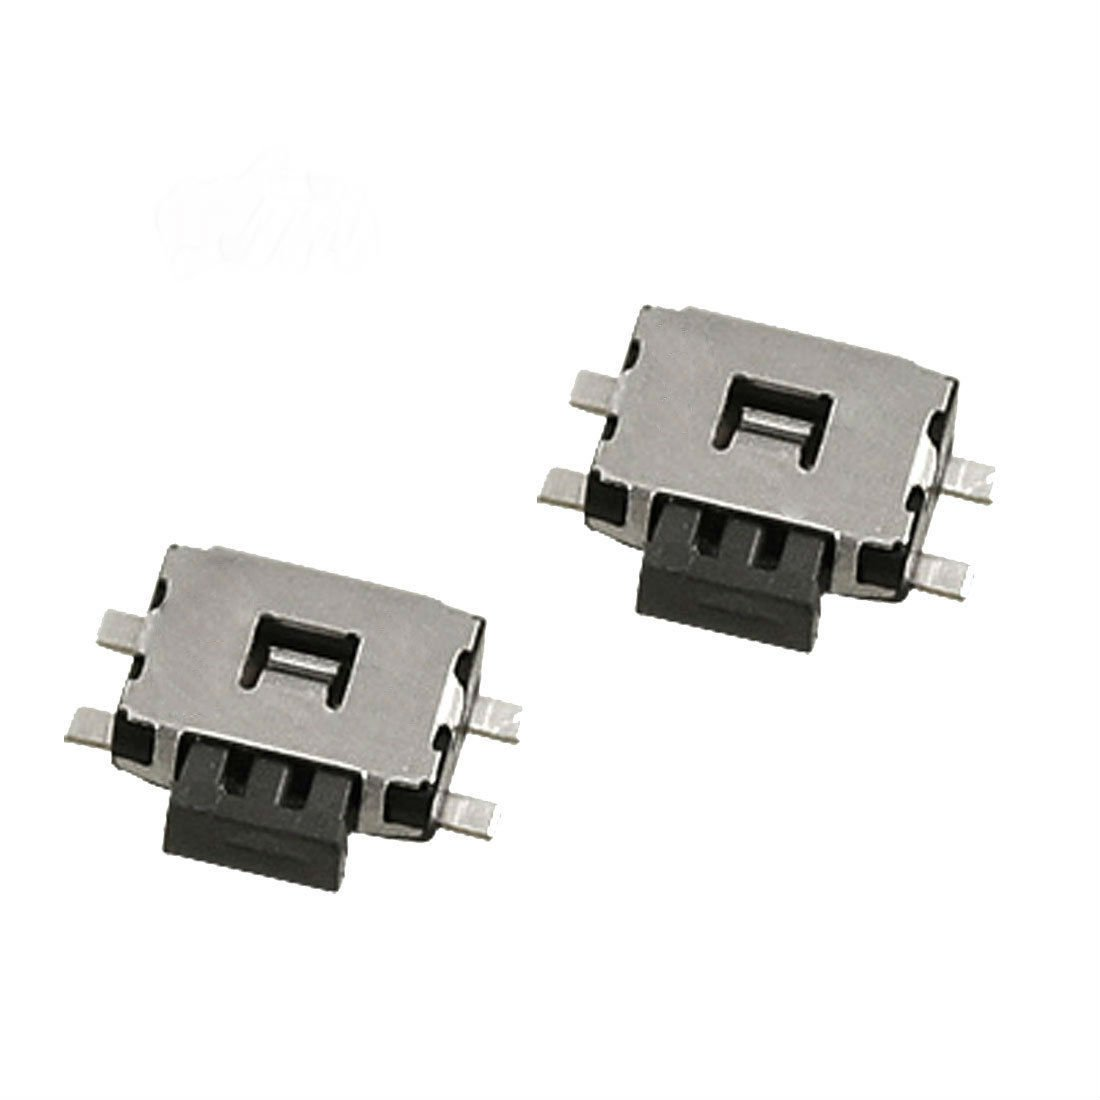 10x Momentary Tactile Tact Push Button Switch 4.7 x 3.5 x 1.67mm 4 Pin SMD db